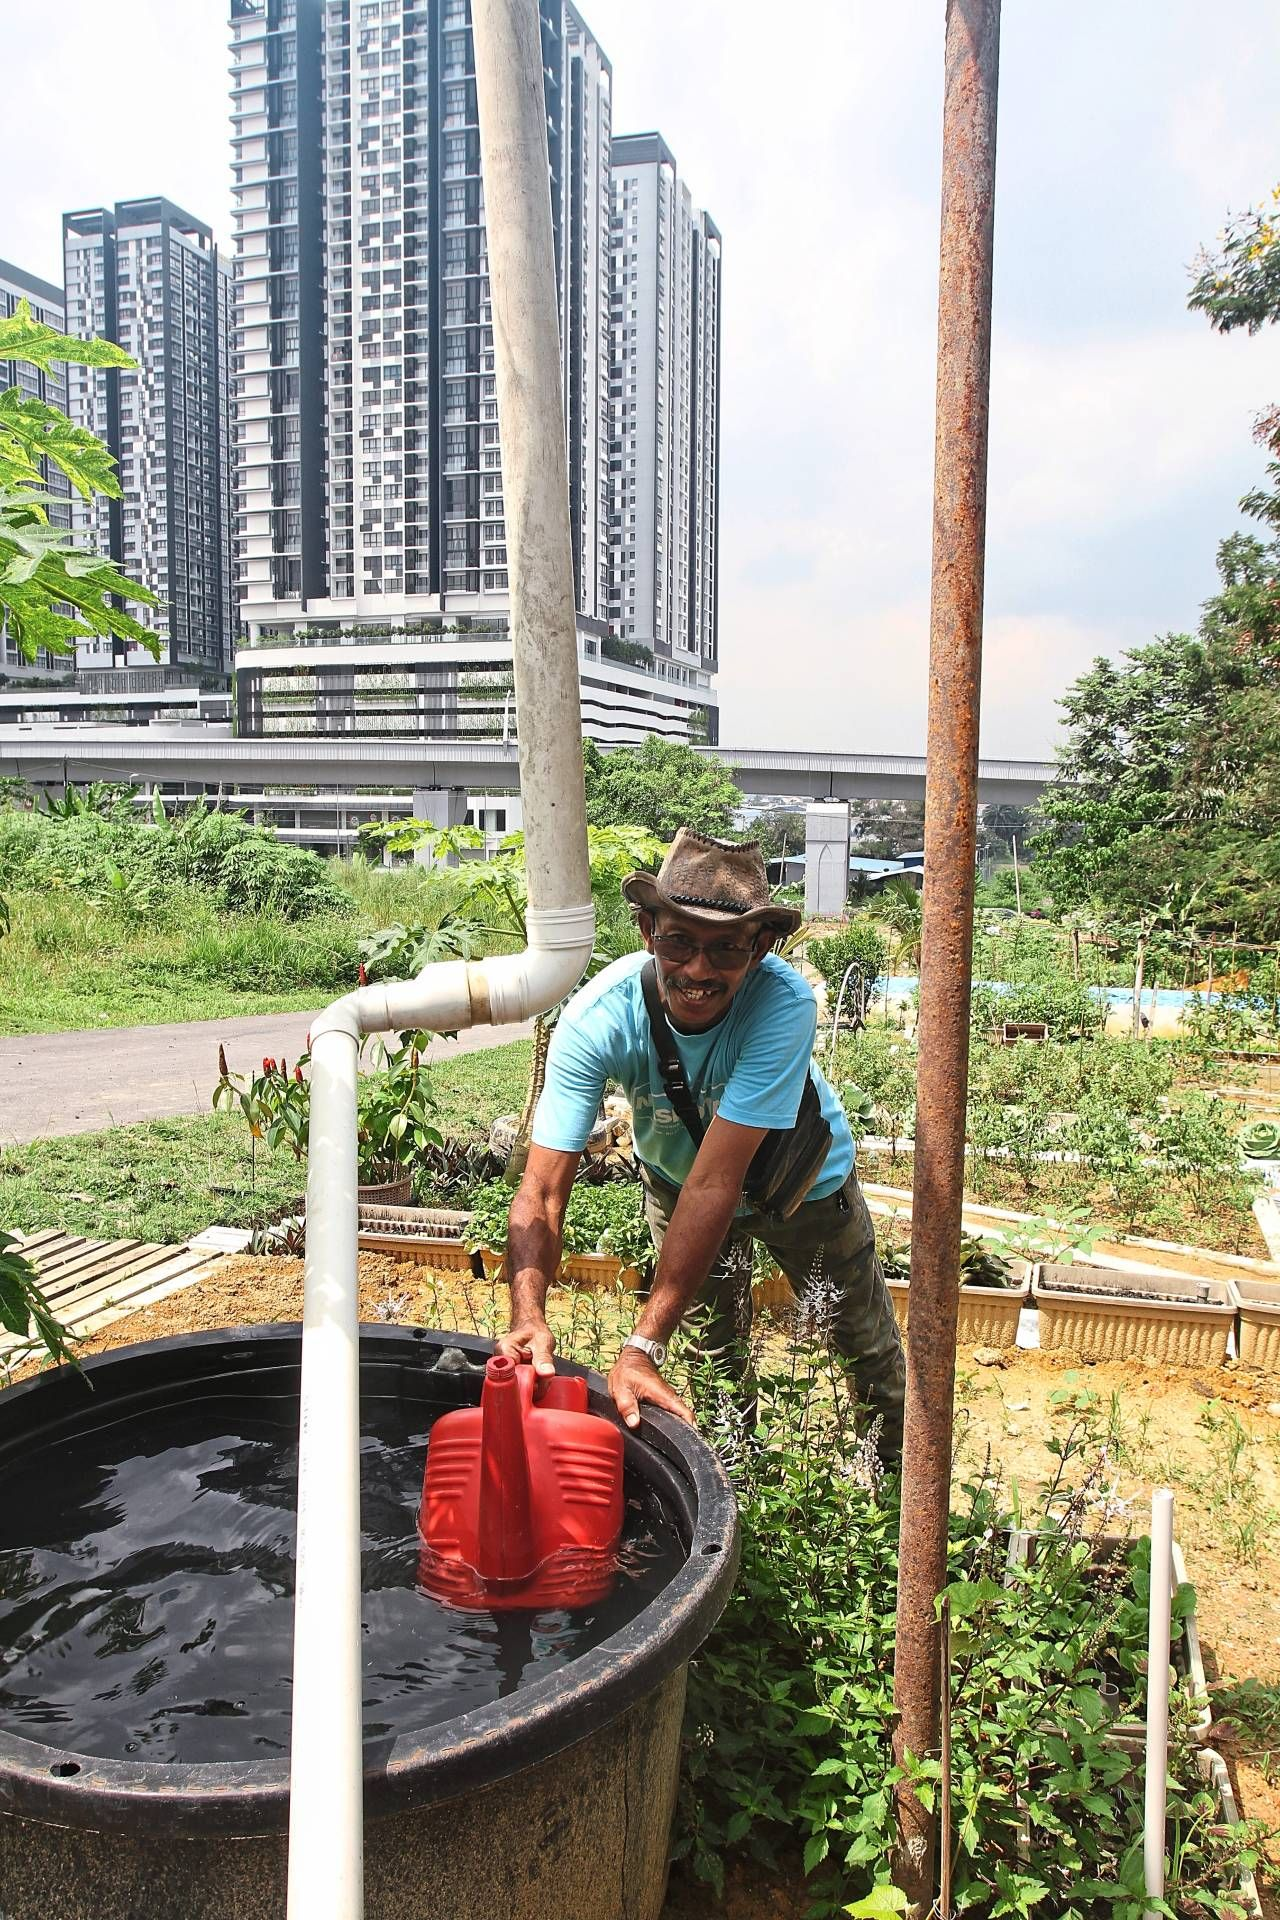 Villager Abdul Rani Selamat getting water for the plants in Kampung Selamat's urban farm.